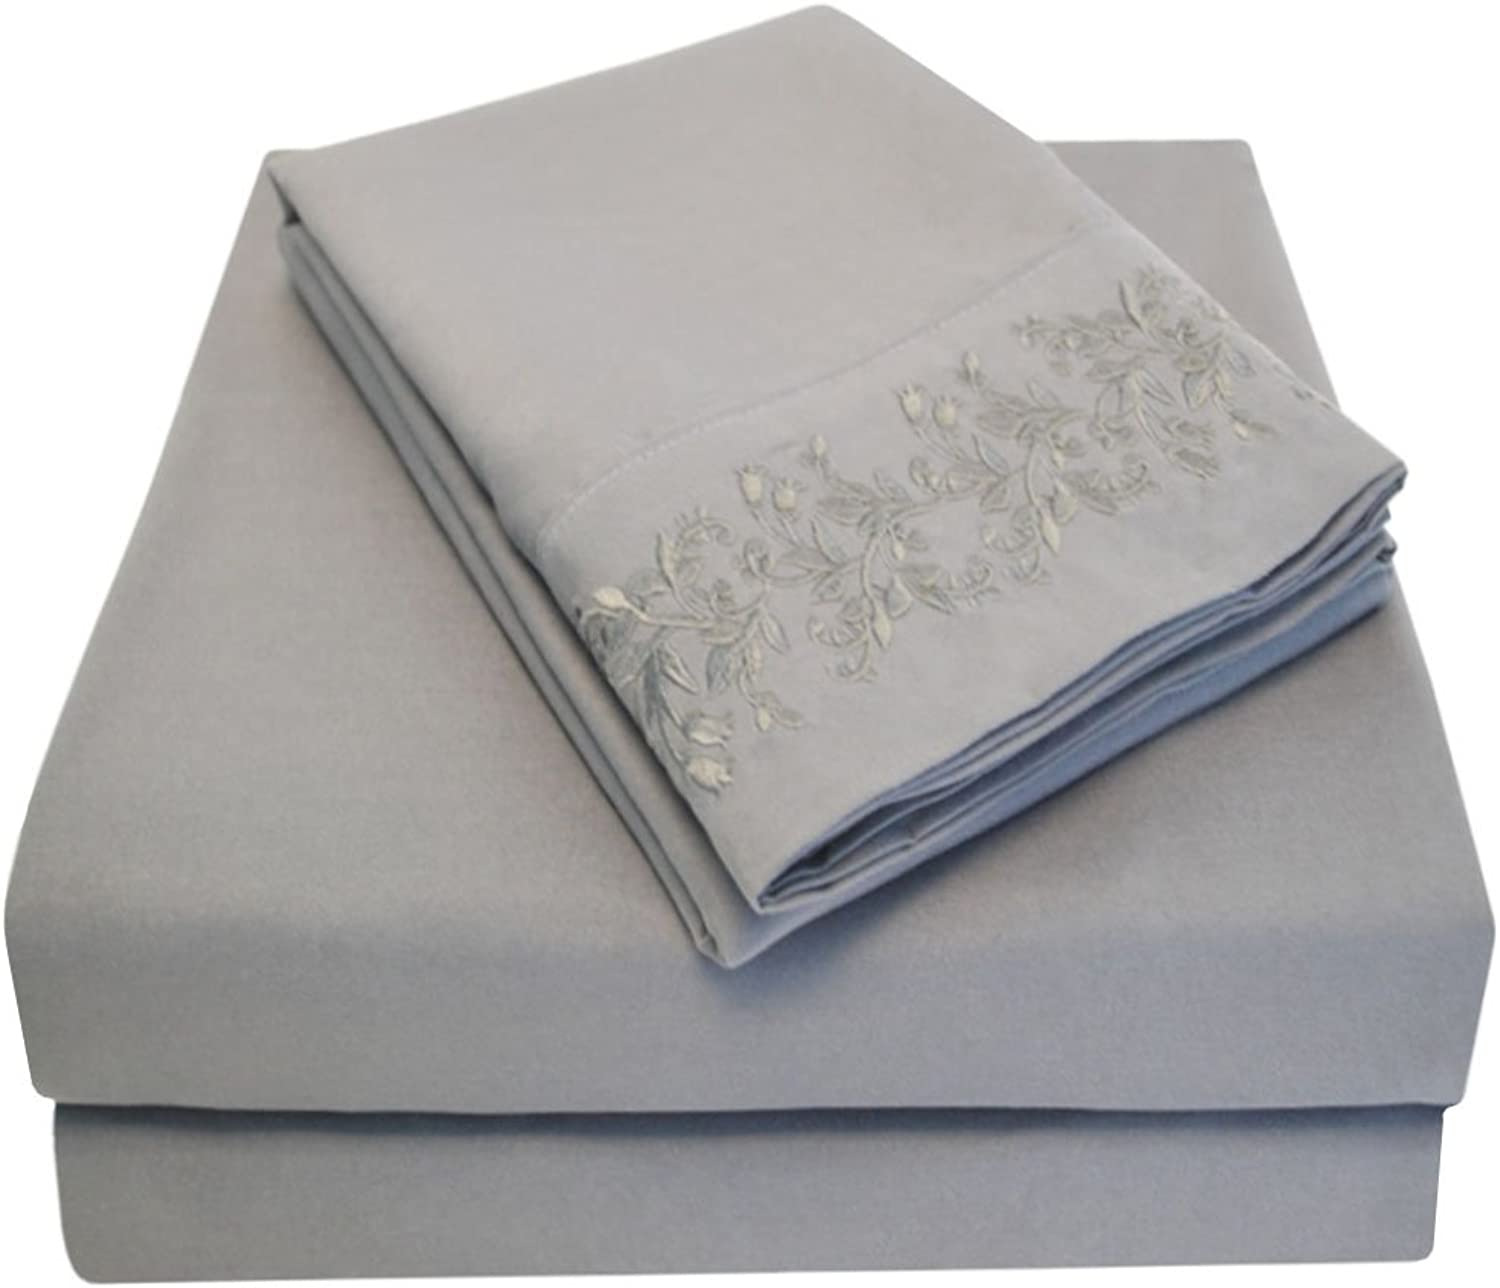 Super Soft Light Weight, 100% Brushed Microfiber, Wrinkle Resistant, Twin XL 3-Piece Sheet Set, Charcoal with Floral Lace Embroidery Pillowcases in Gift Box